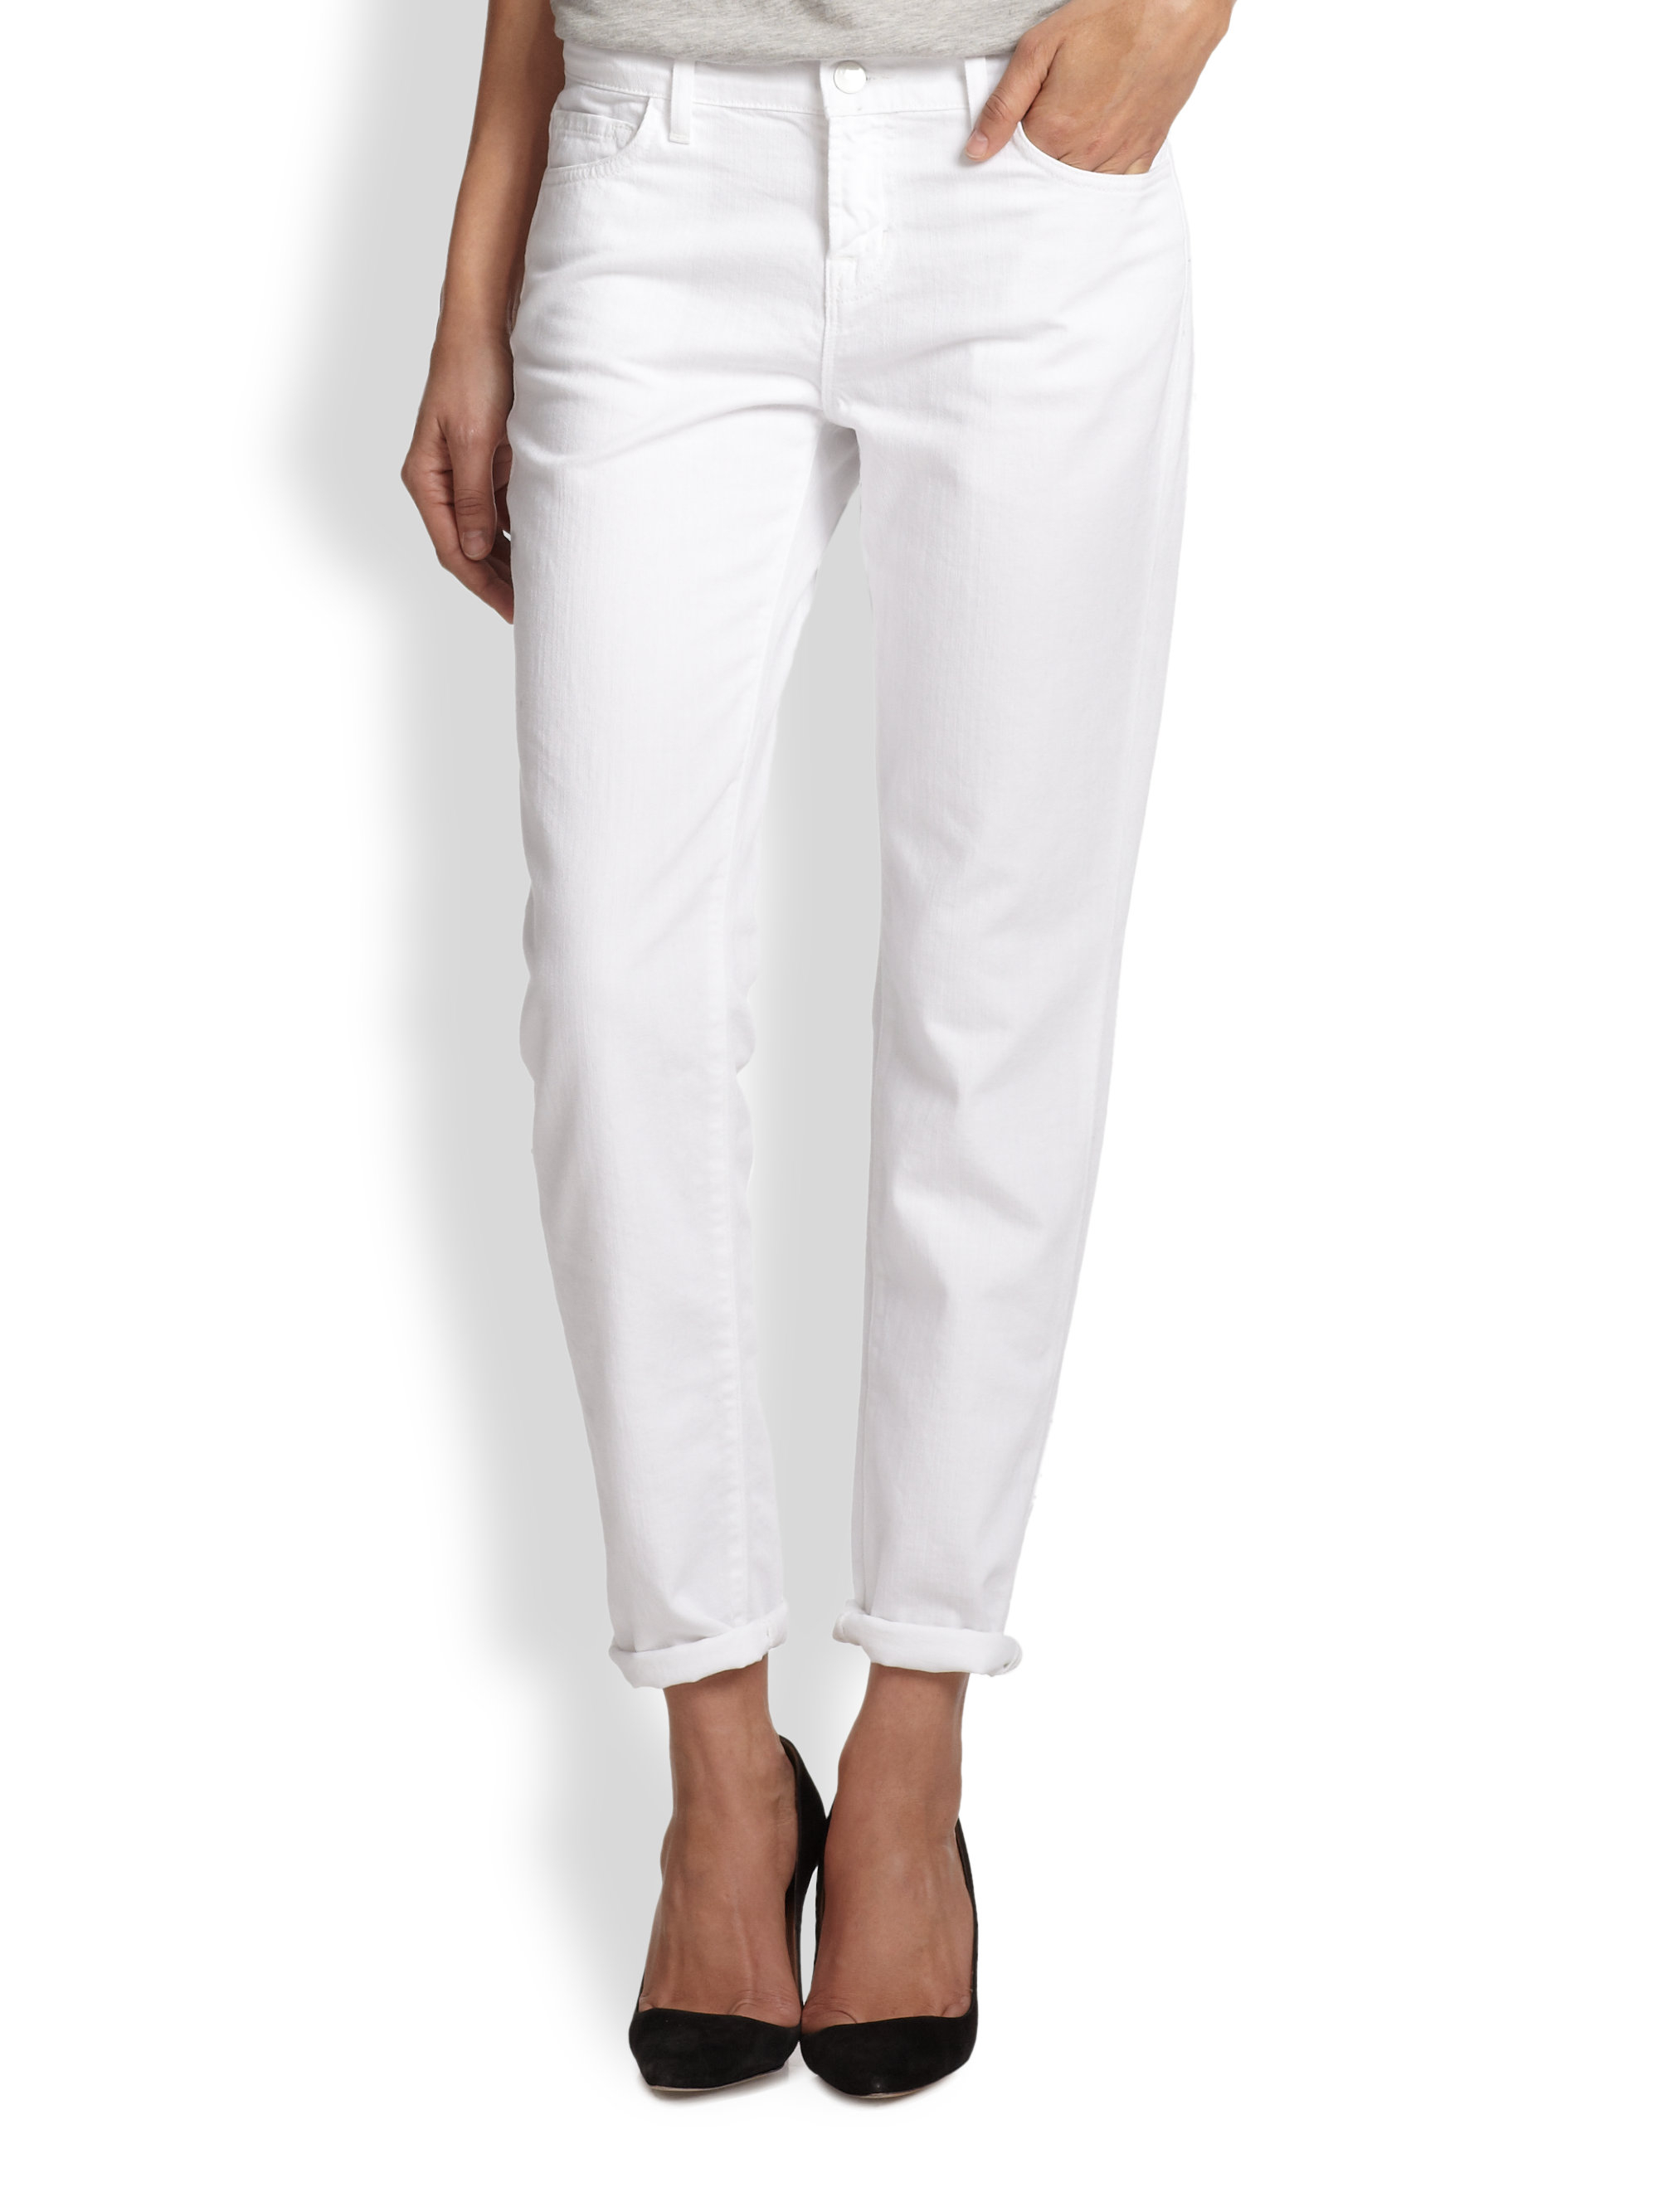 J brand Jake Slim-Fit Boyfriend Jeans in White | Lyst